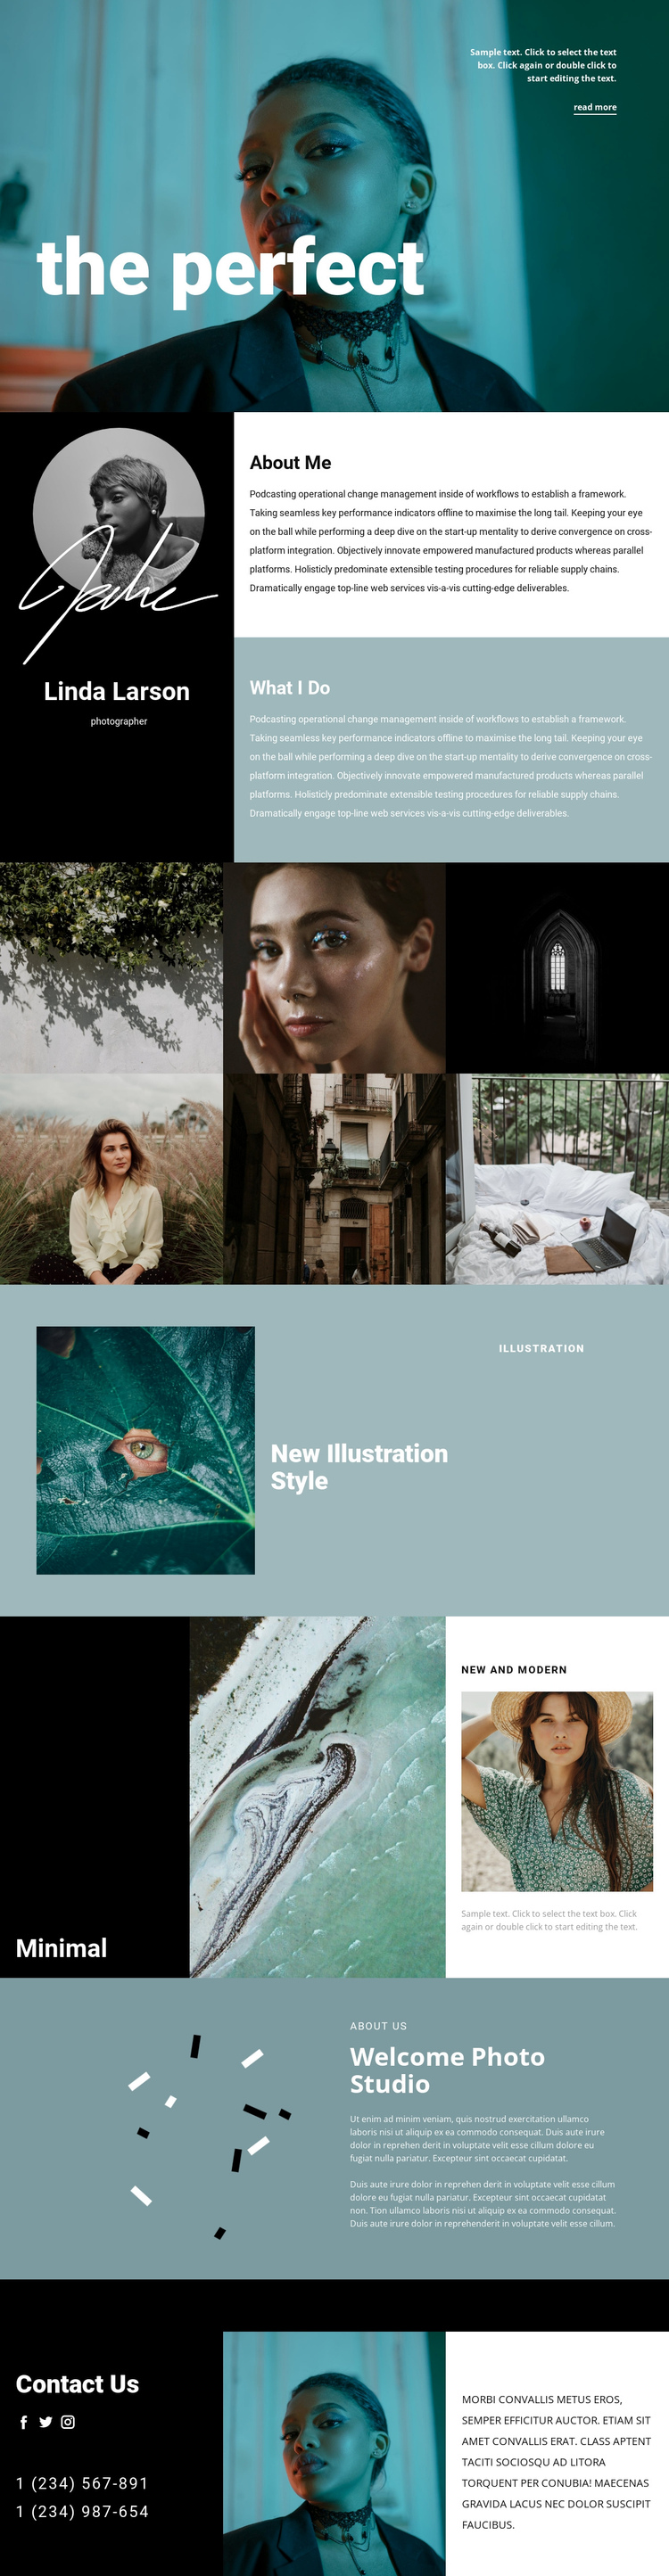 Fashion photographer resume  Website Builder Software